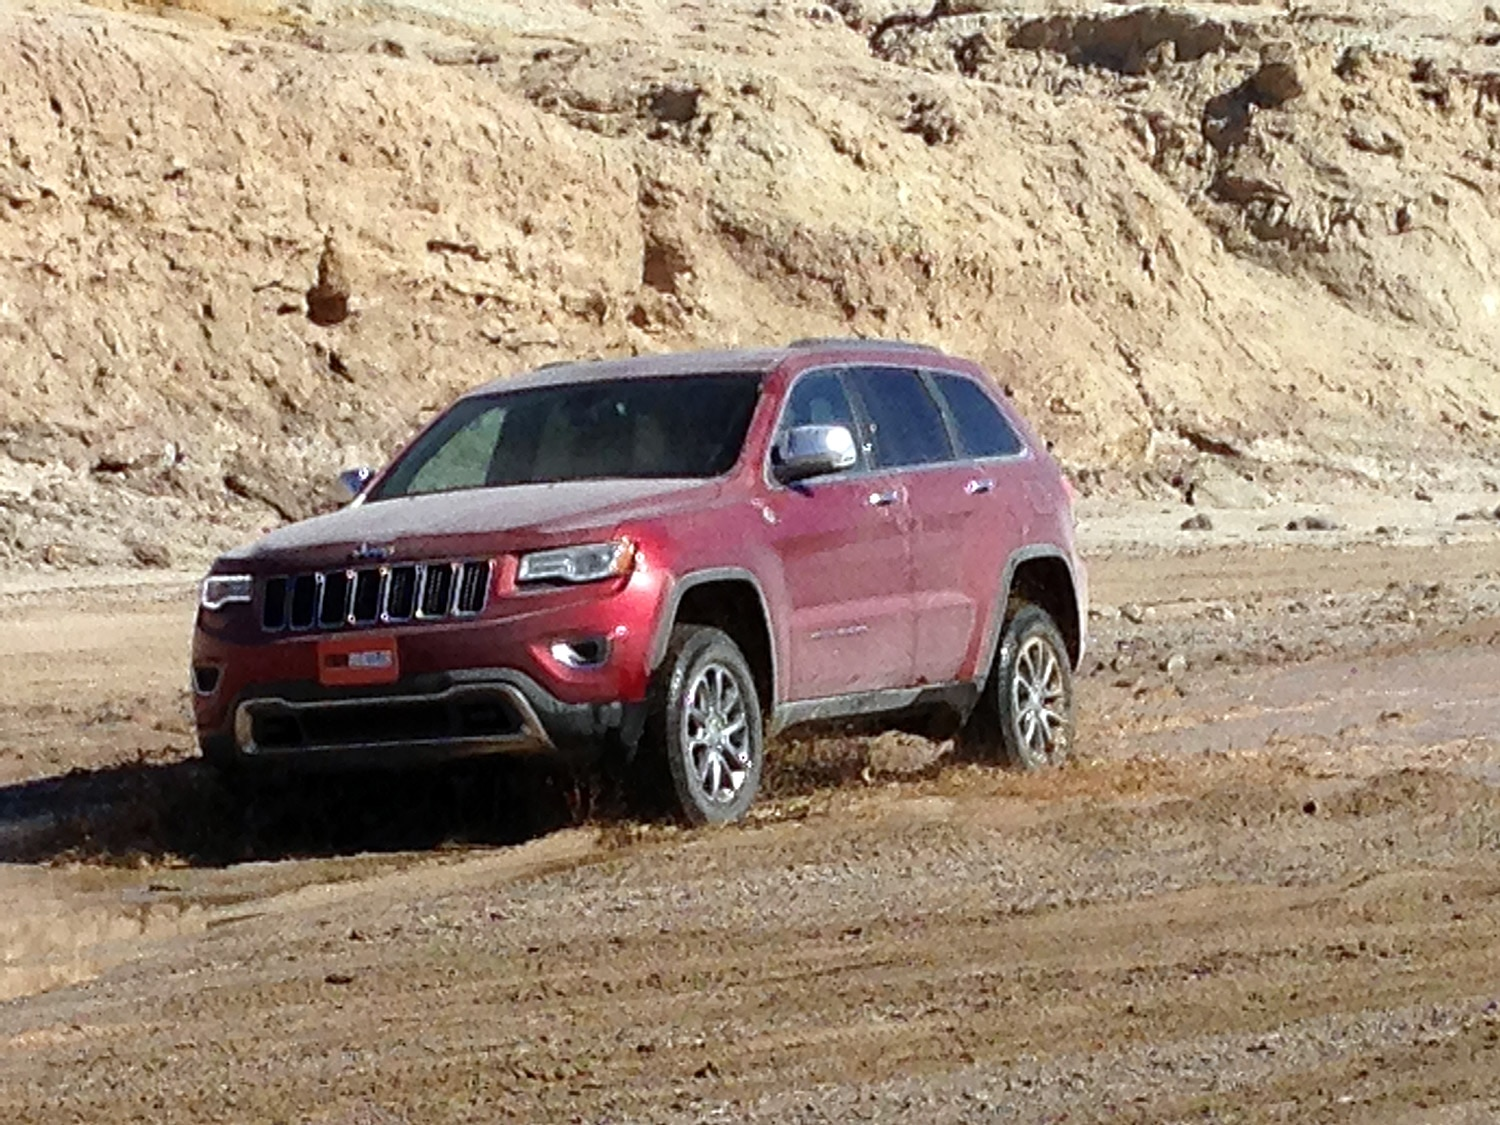 2014 four wheeler of the year day 4 4 2014 jeep grand cherokee